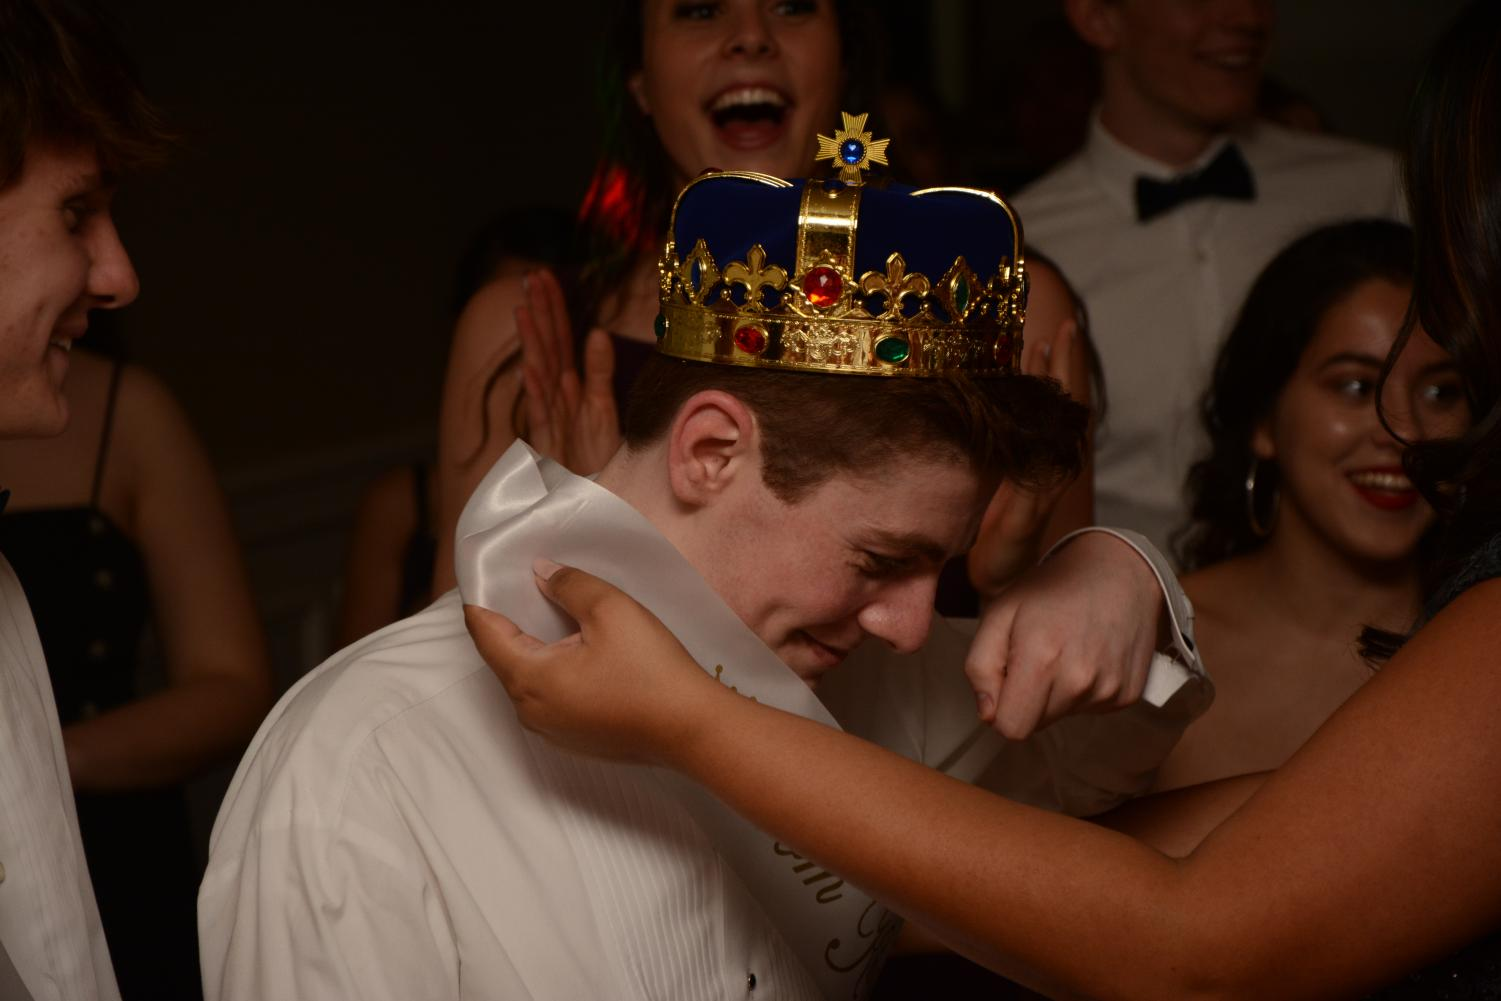 Senior Dylan Josephson of Lincroft is crowned 2018 Prom King. Josephson won this title alongside senior and Prom Queen Jackie Geller of Manalapan.